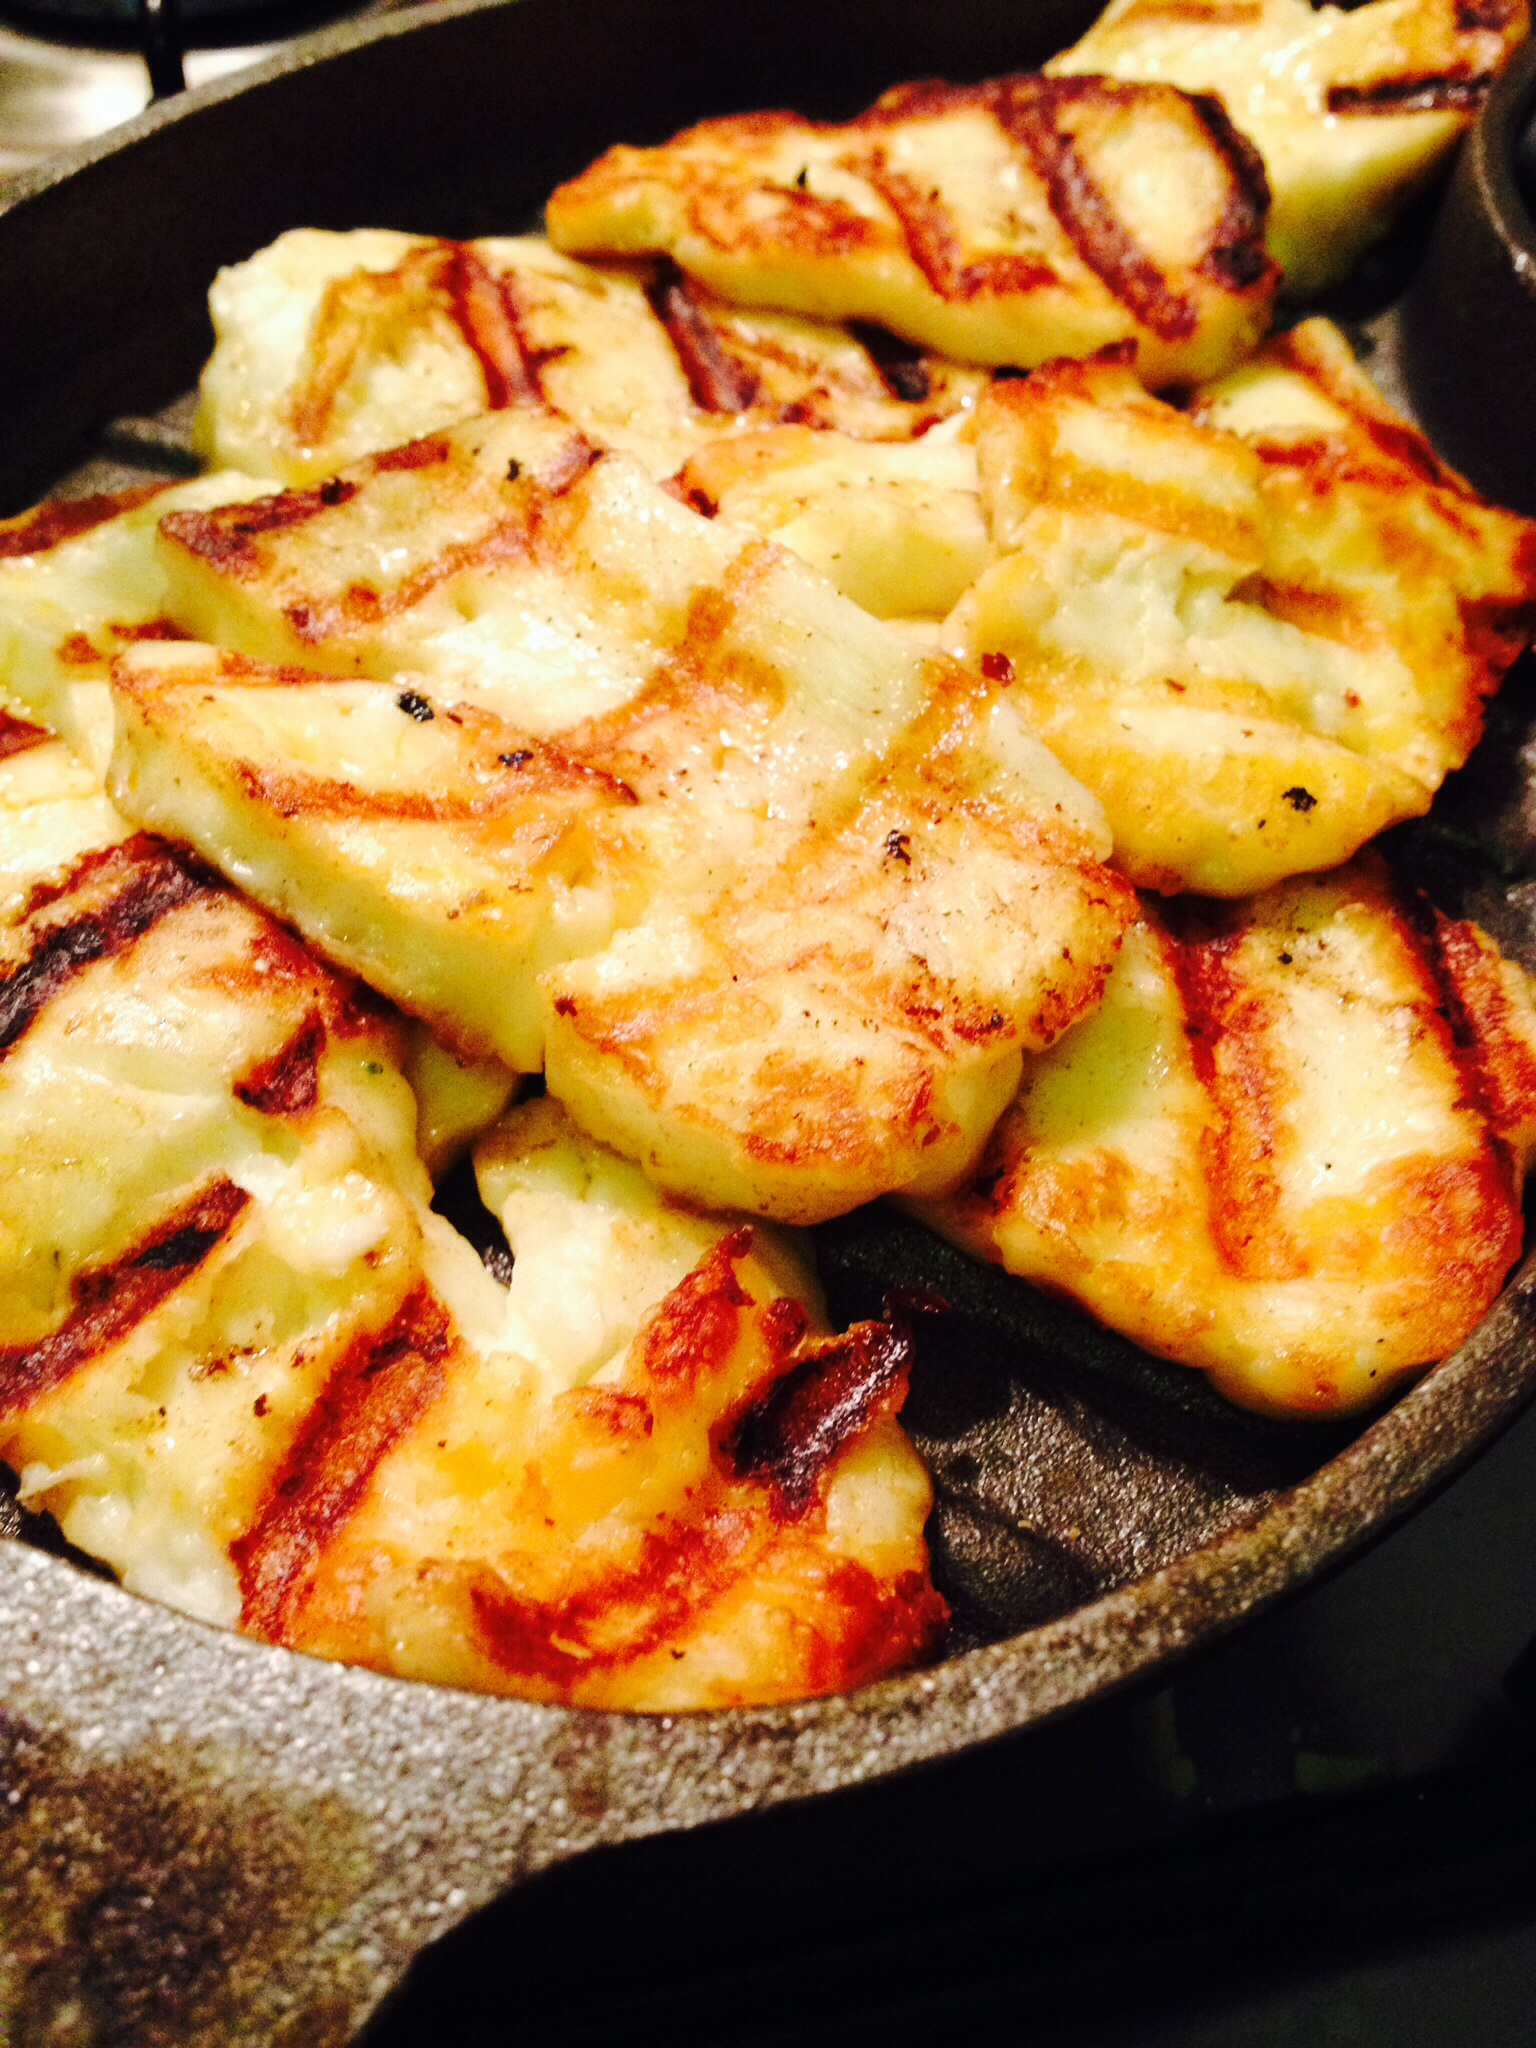 Halloumi with chilli oil